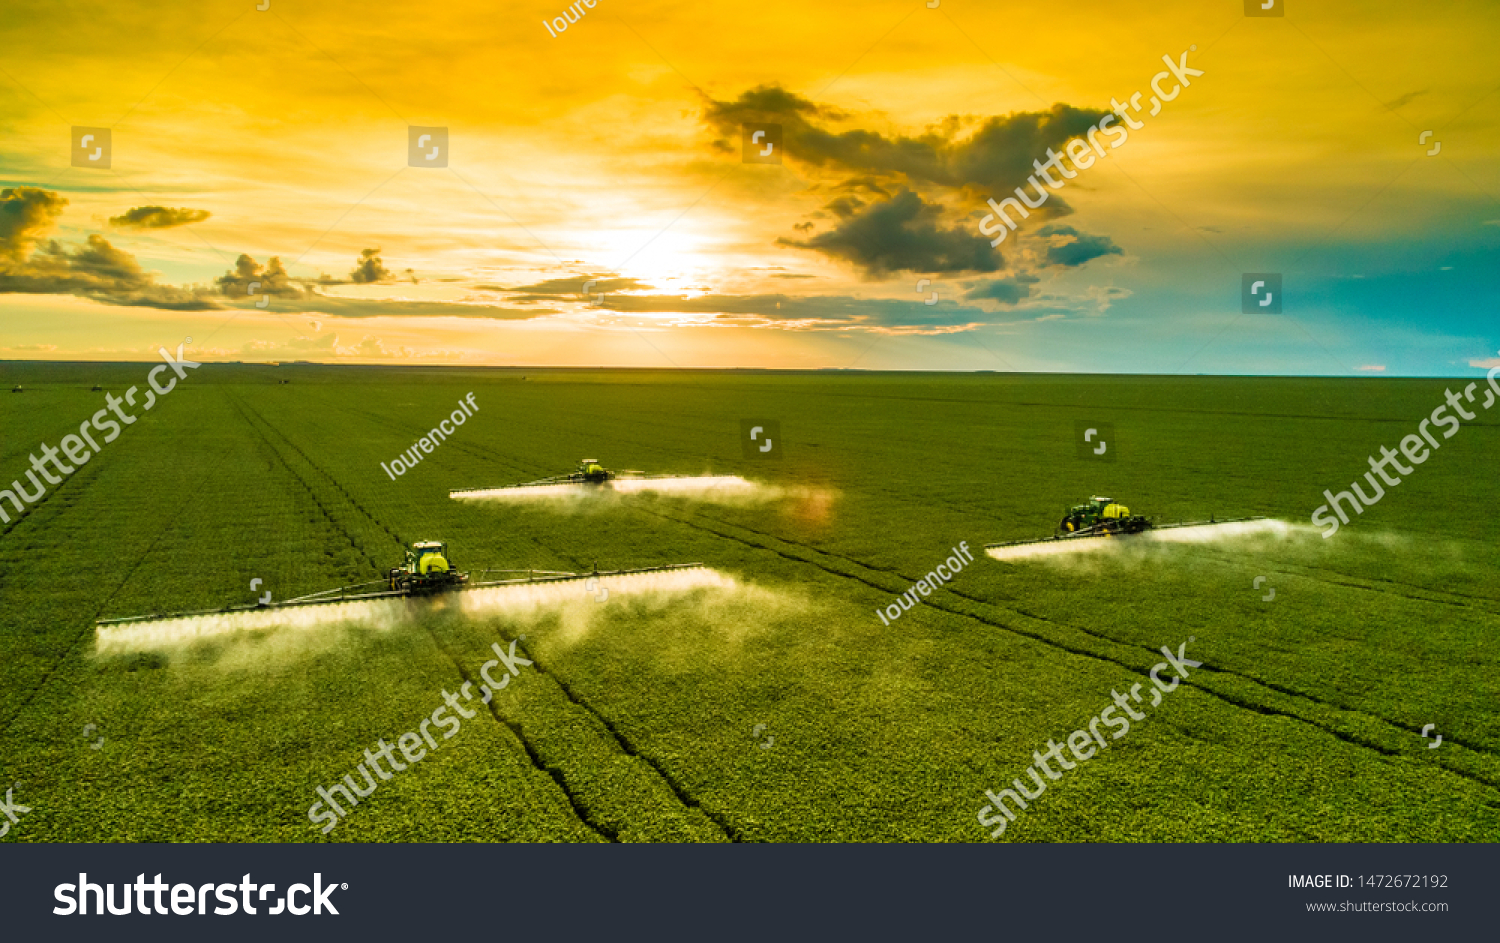 Agricultural sprayers making application at the end of the day with beautiful sunset